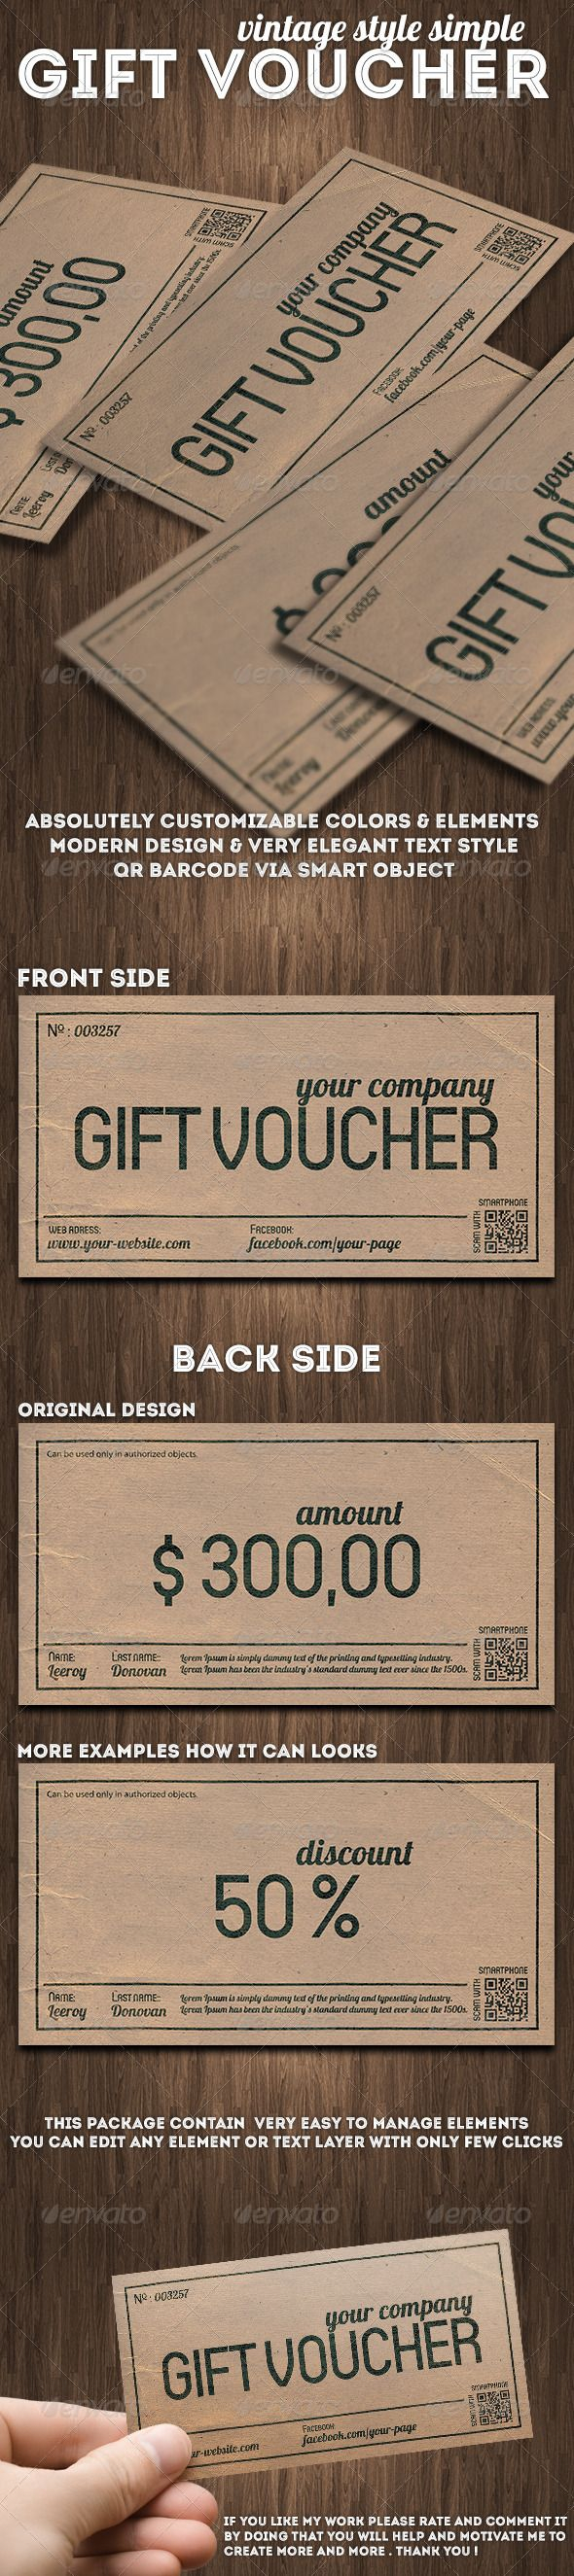 Elvira v2 double sided gift certificate template by deideigraphic vintage style gift voucher or discount coupon xflitez Images